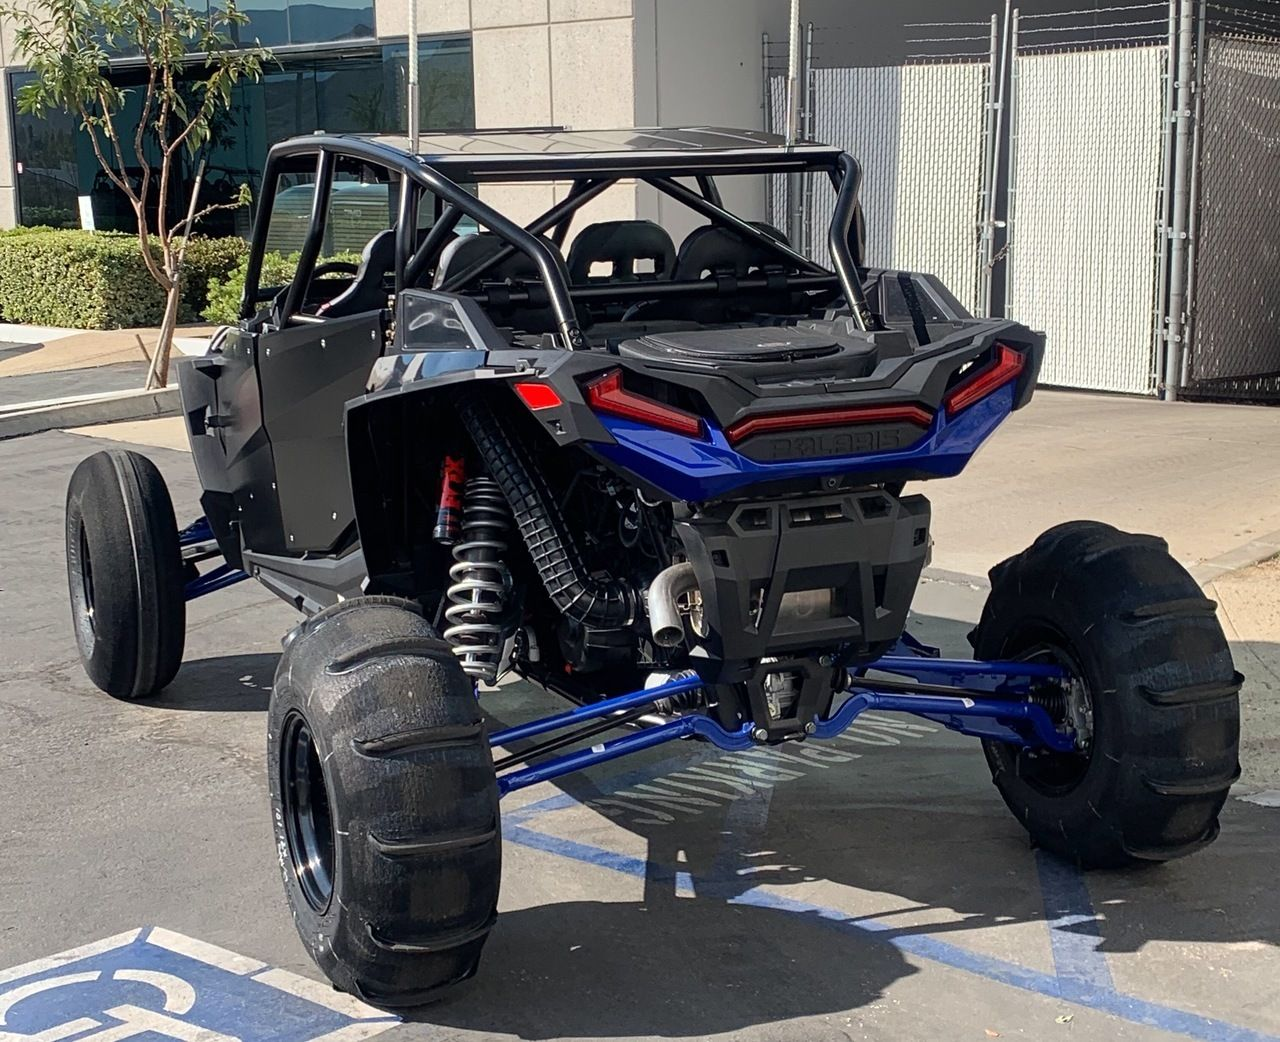 Xpr 4 Fastback Shorty Cage Polaris Rzr Xp 4 1000 In 2020 Polaris Rzr Xp Polaris Rzr Rzr